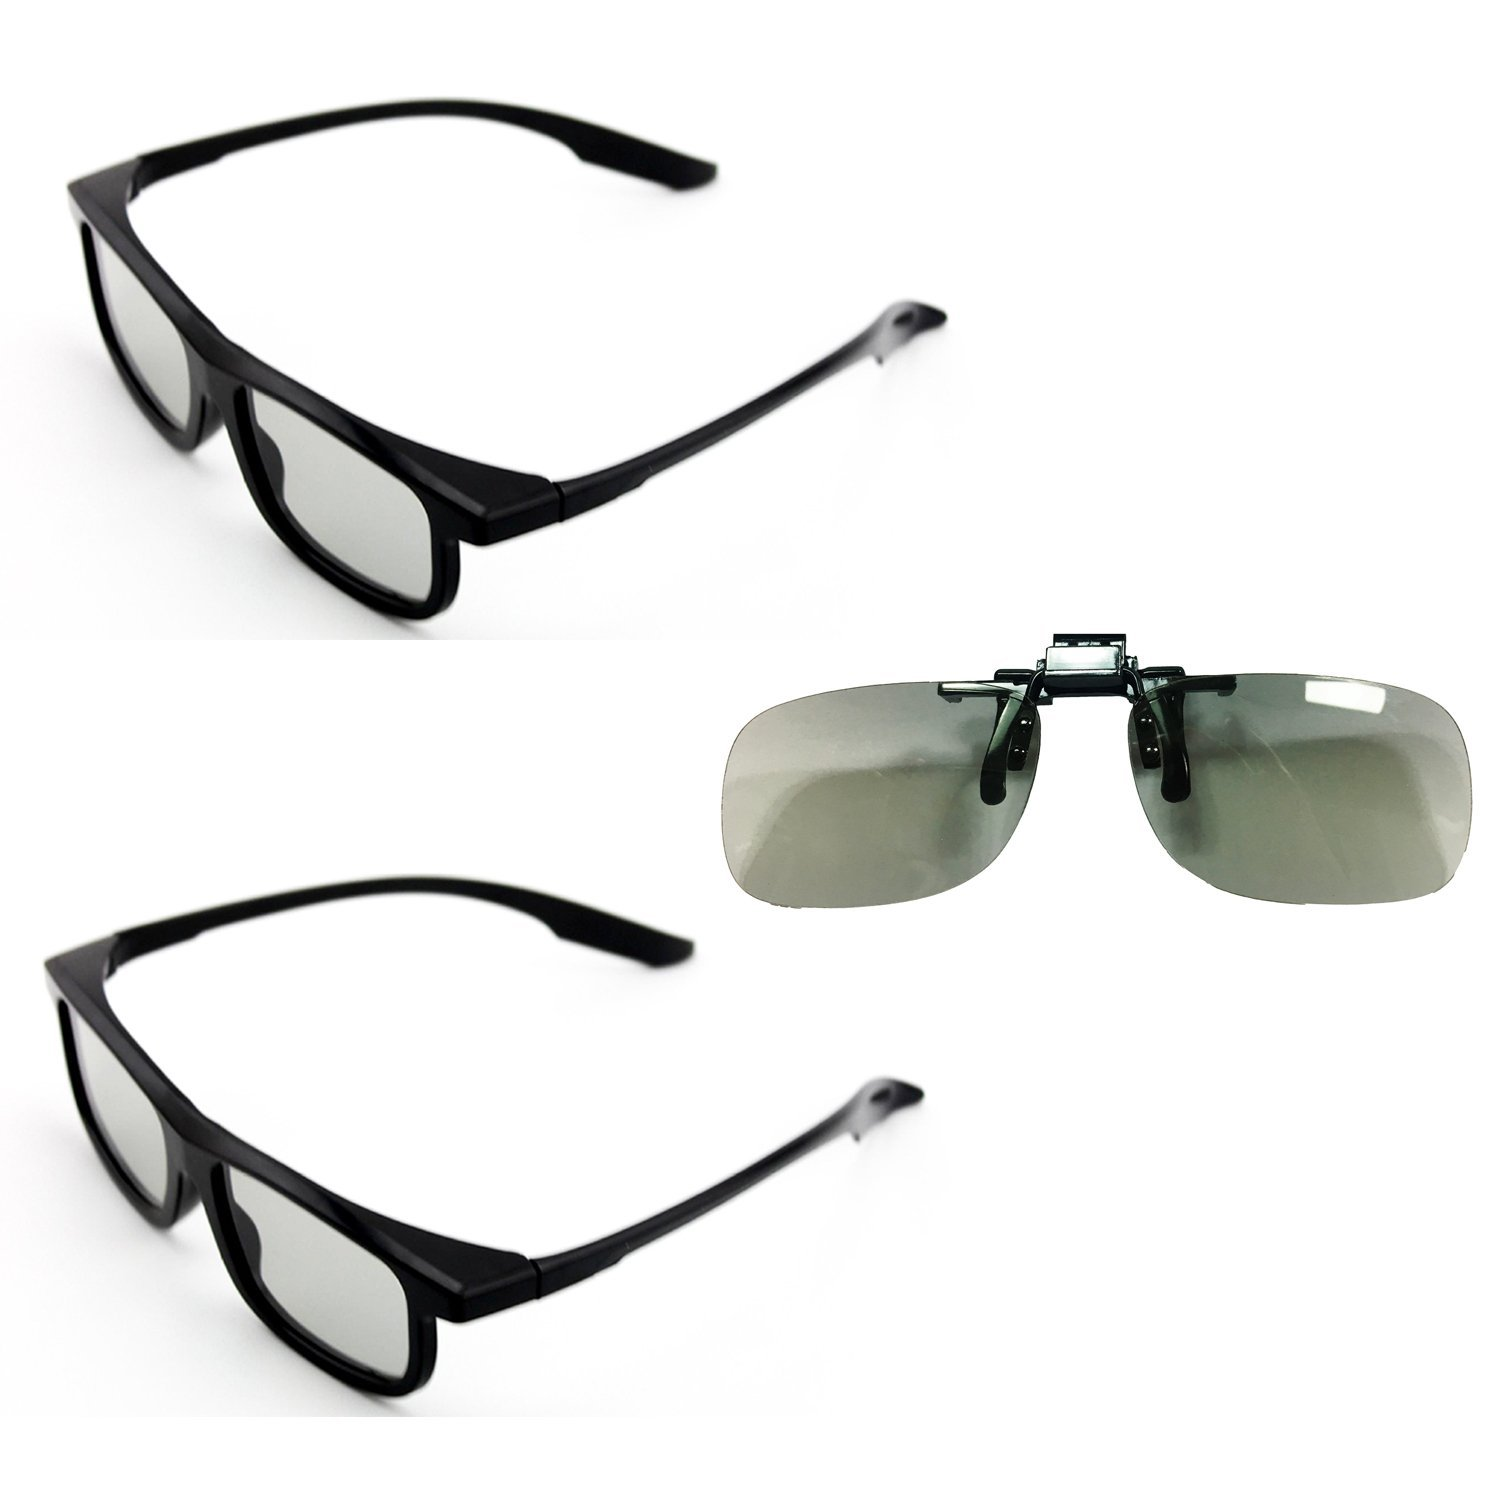 Goswot 3 Pairs of Passive Circular Polarized 3D Glasses for Real-D Theaters/ Passive 3D TVs